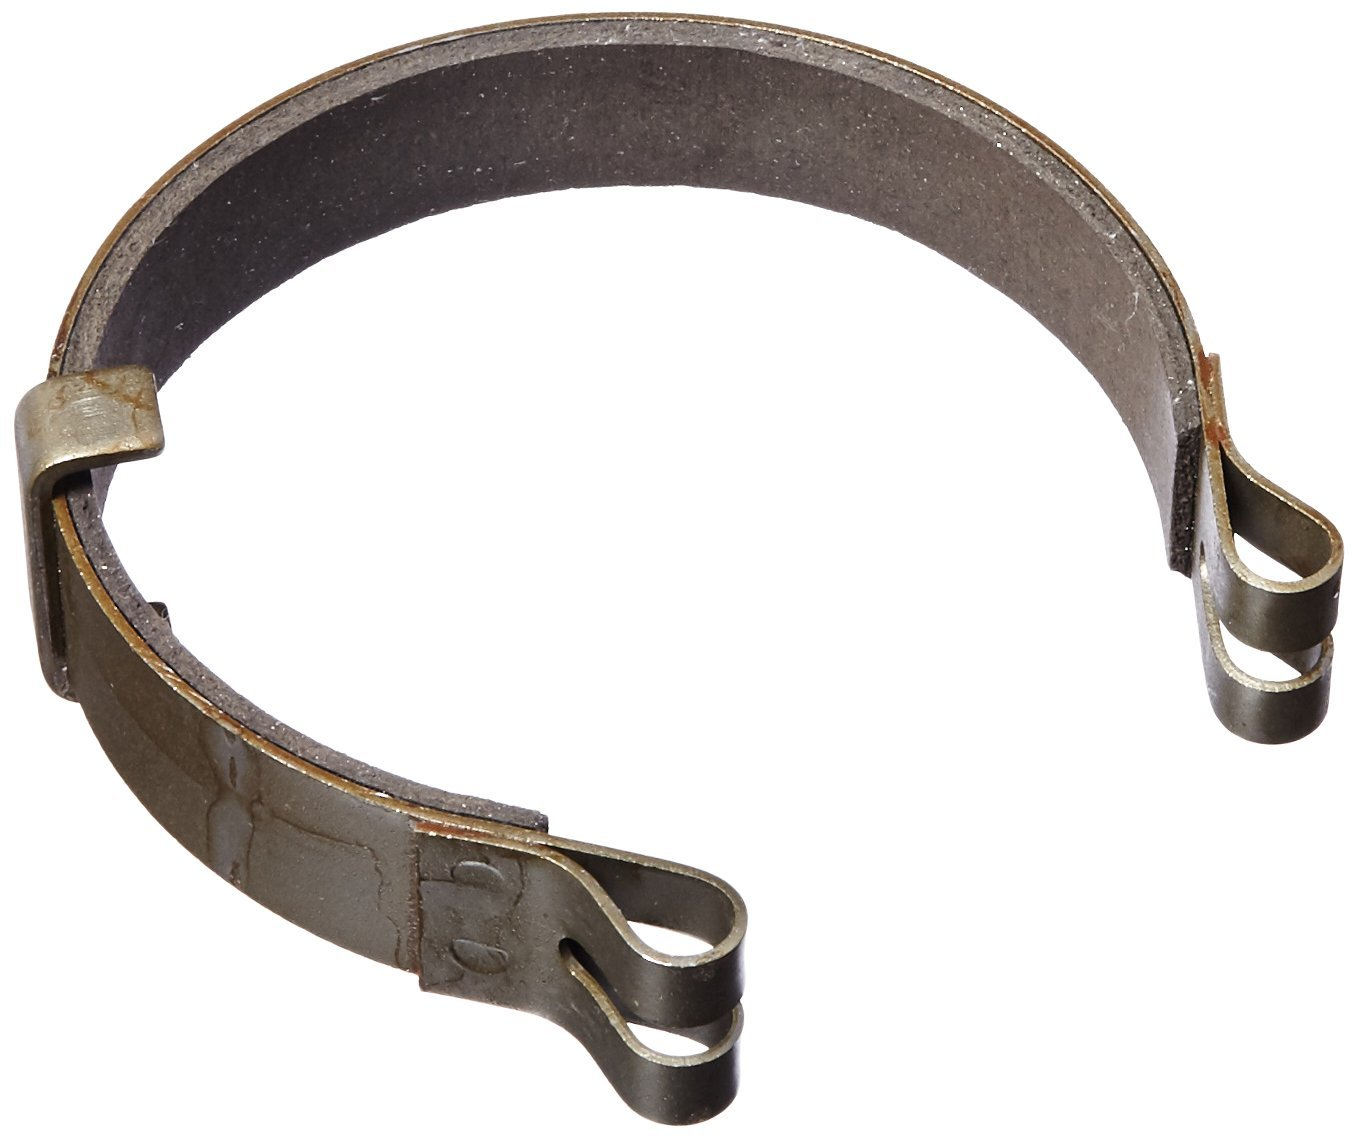 Maxpower 9195 Brake Band and Bracket for Go-Carts Replaces Manco 1036